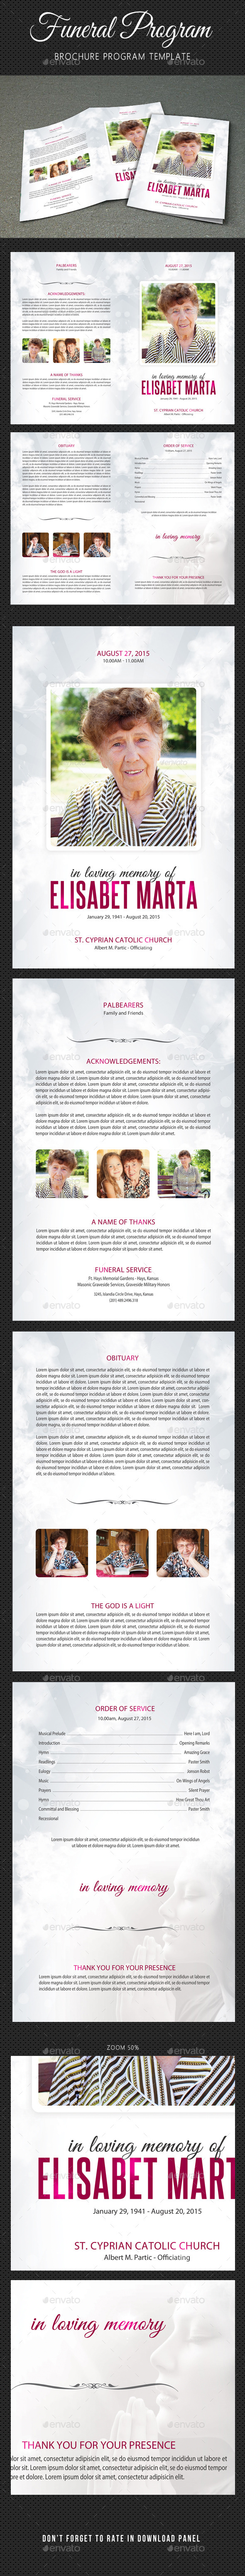 Funeral Program Brochure Template V02 - Informational Brochures